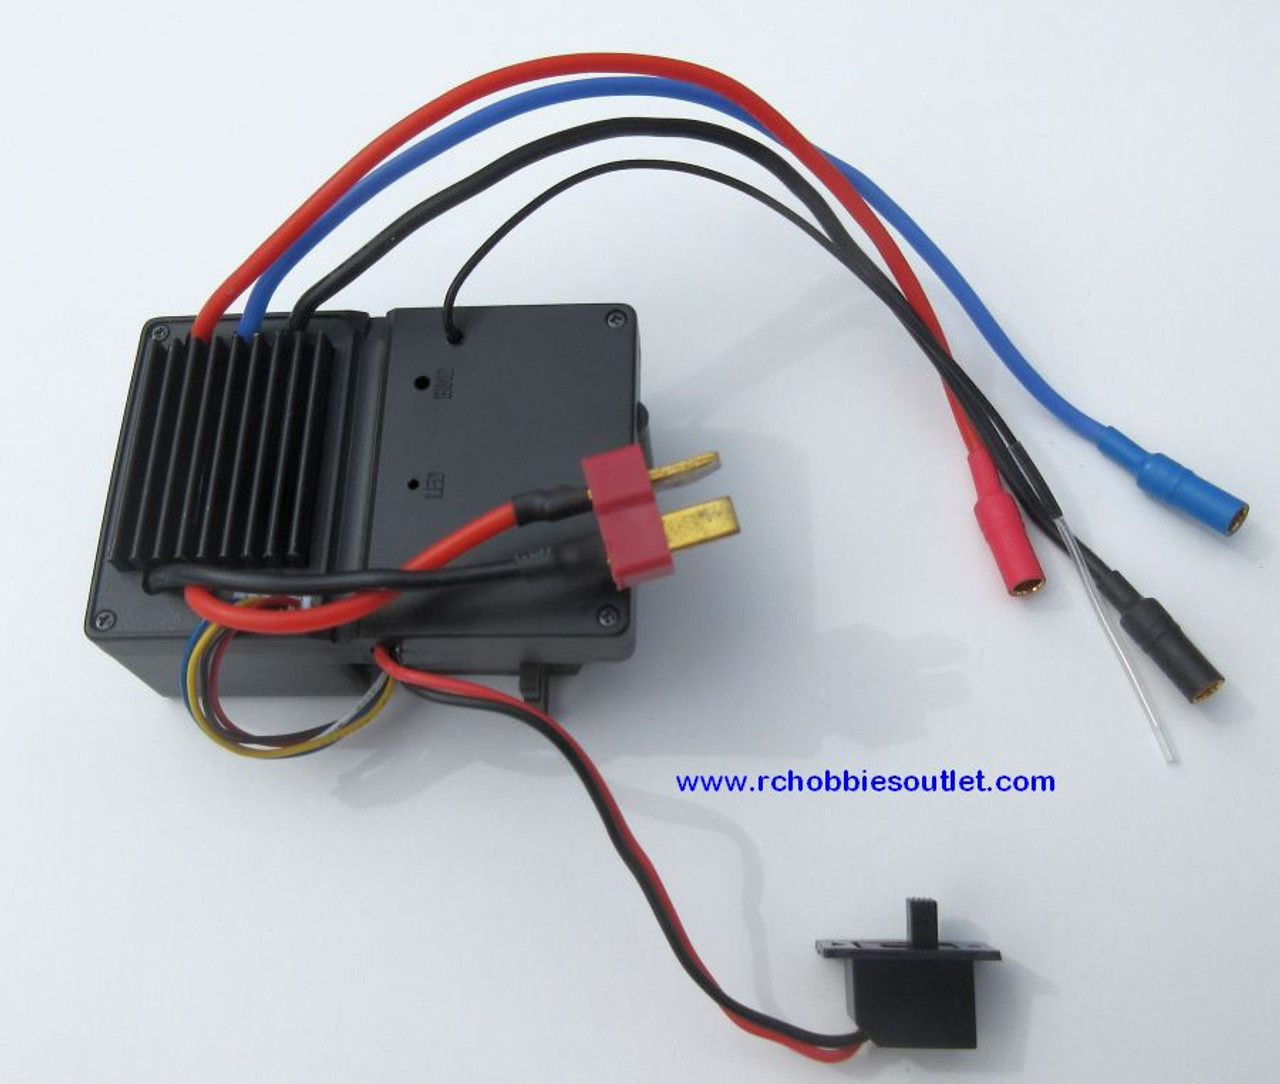 50648  Brushless ESC Servo Receiver Module for 1/12 Scale HSP Brushless Buggy